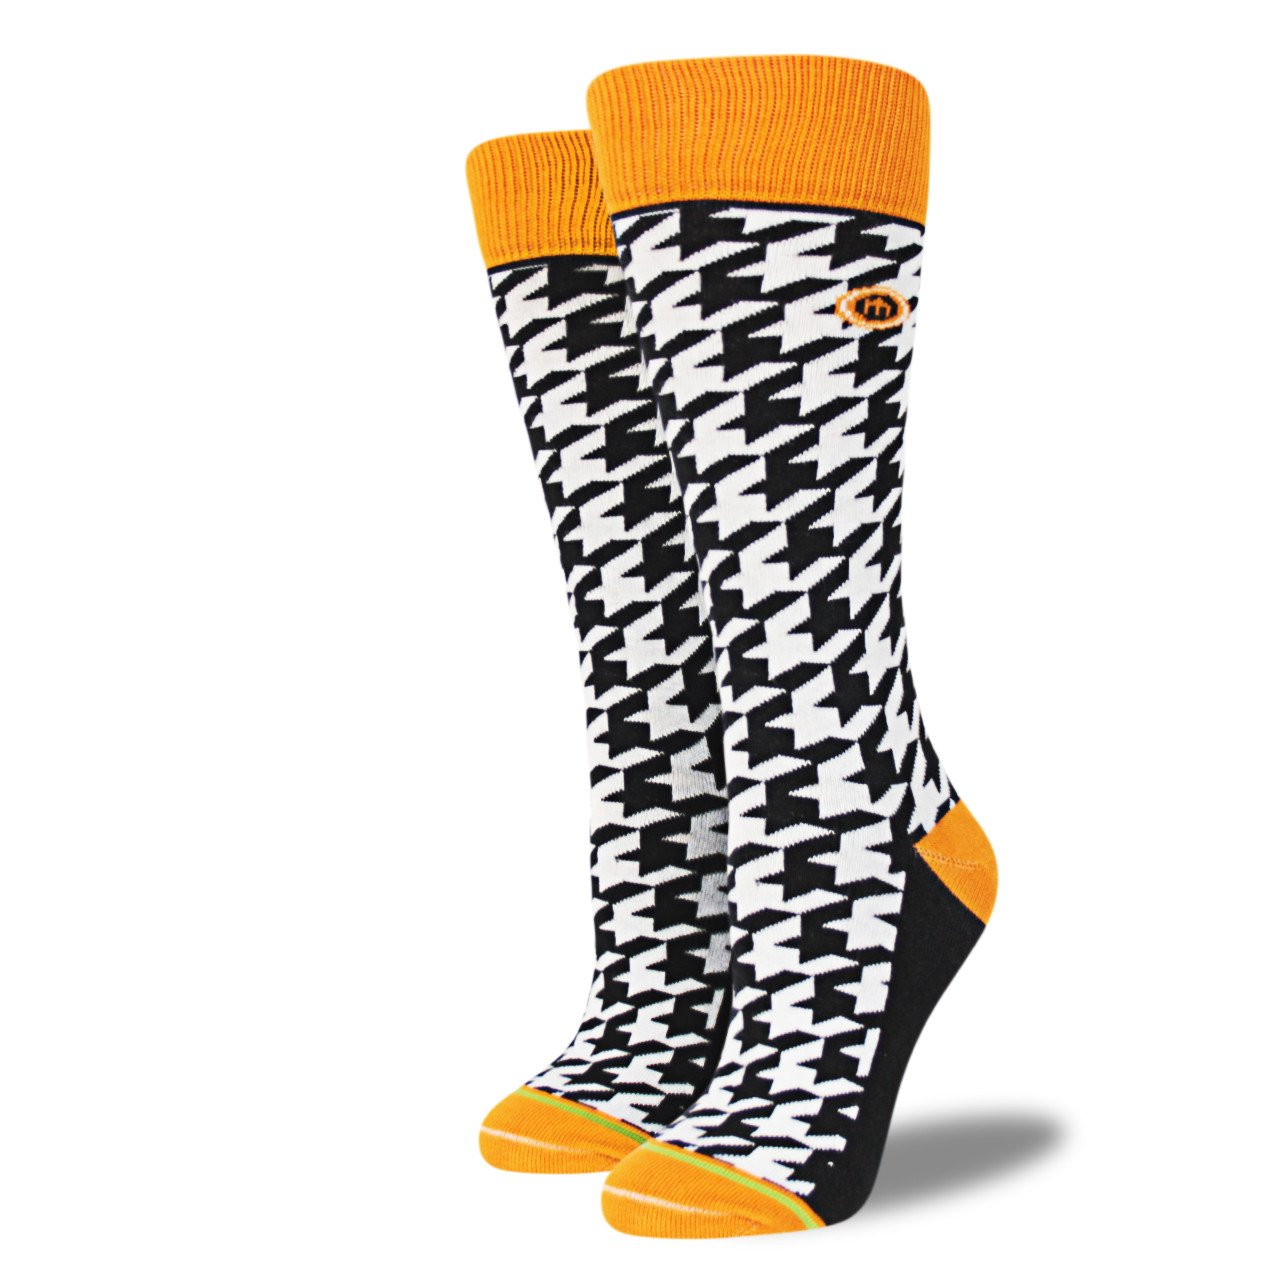 These houndstooth socks with the yellow trim are sure to brighten up the dreariest January day!  The Mac sock $14